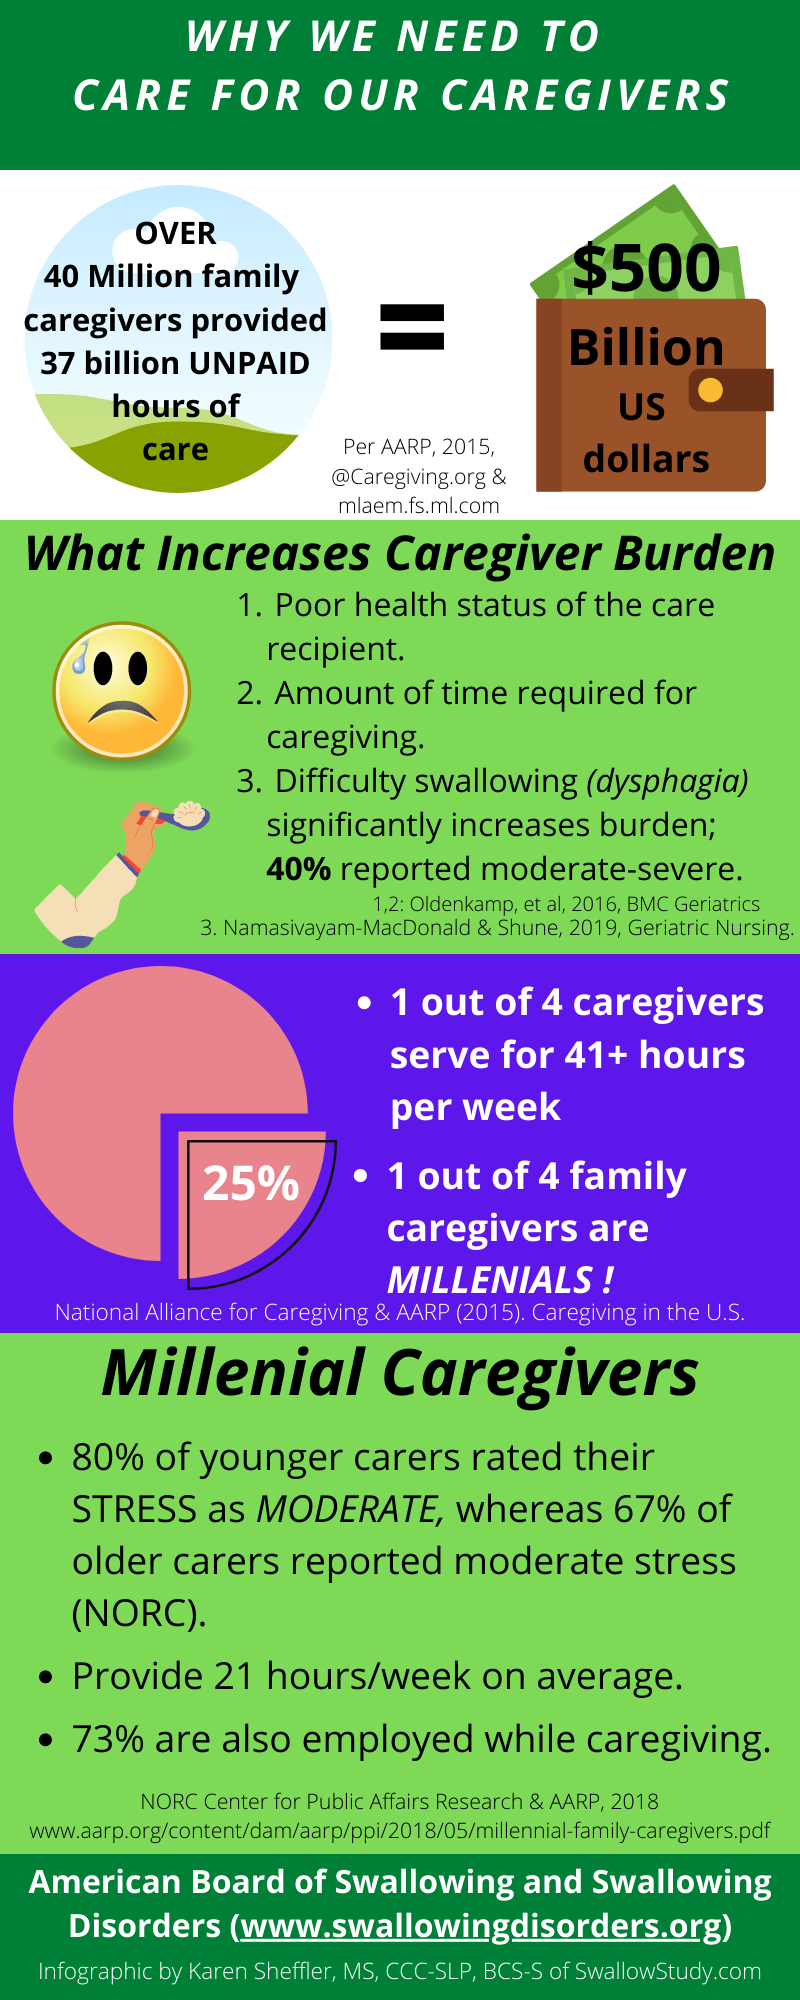 Care for Caregivers general infographic